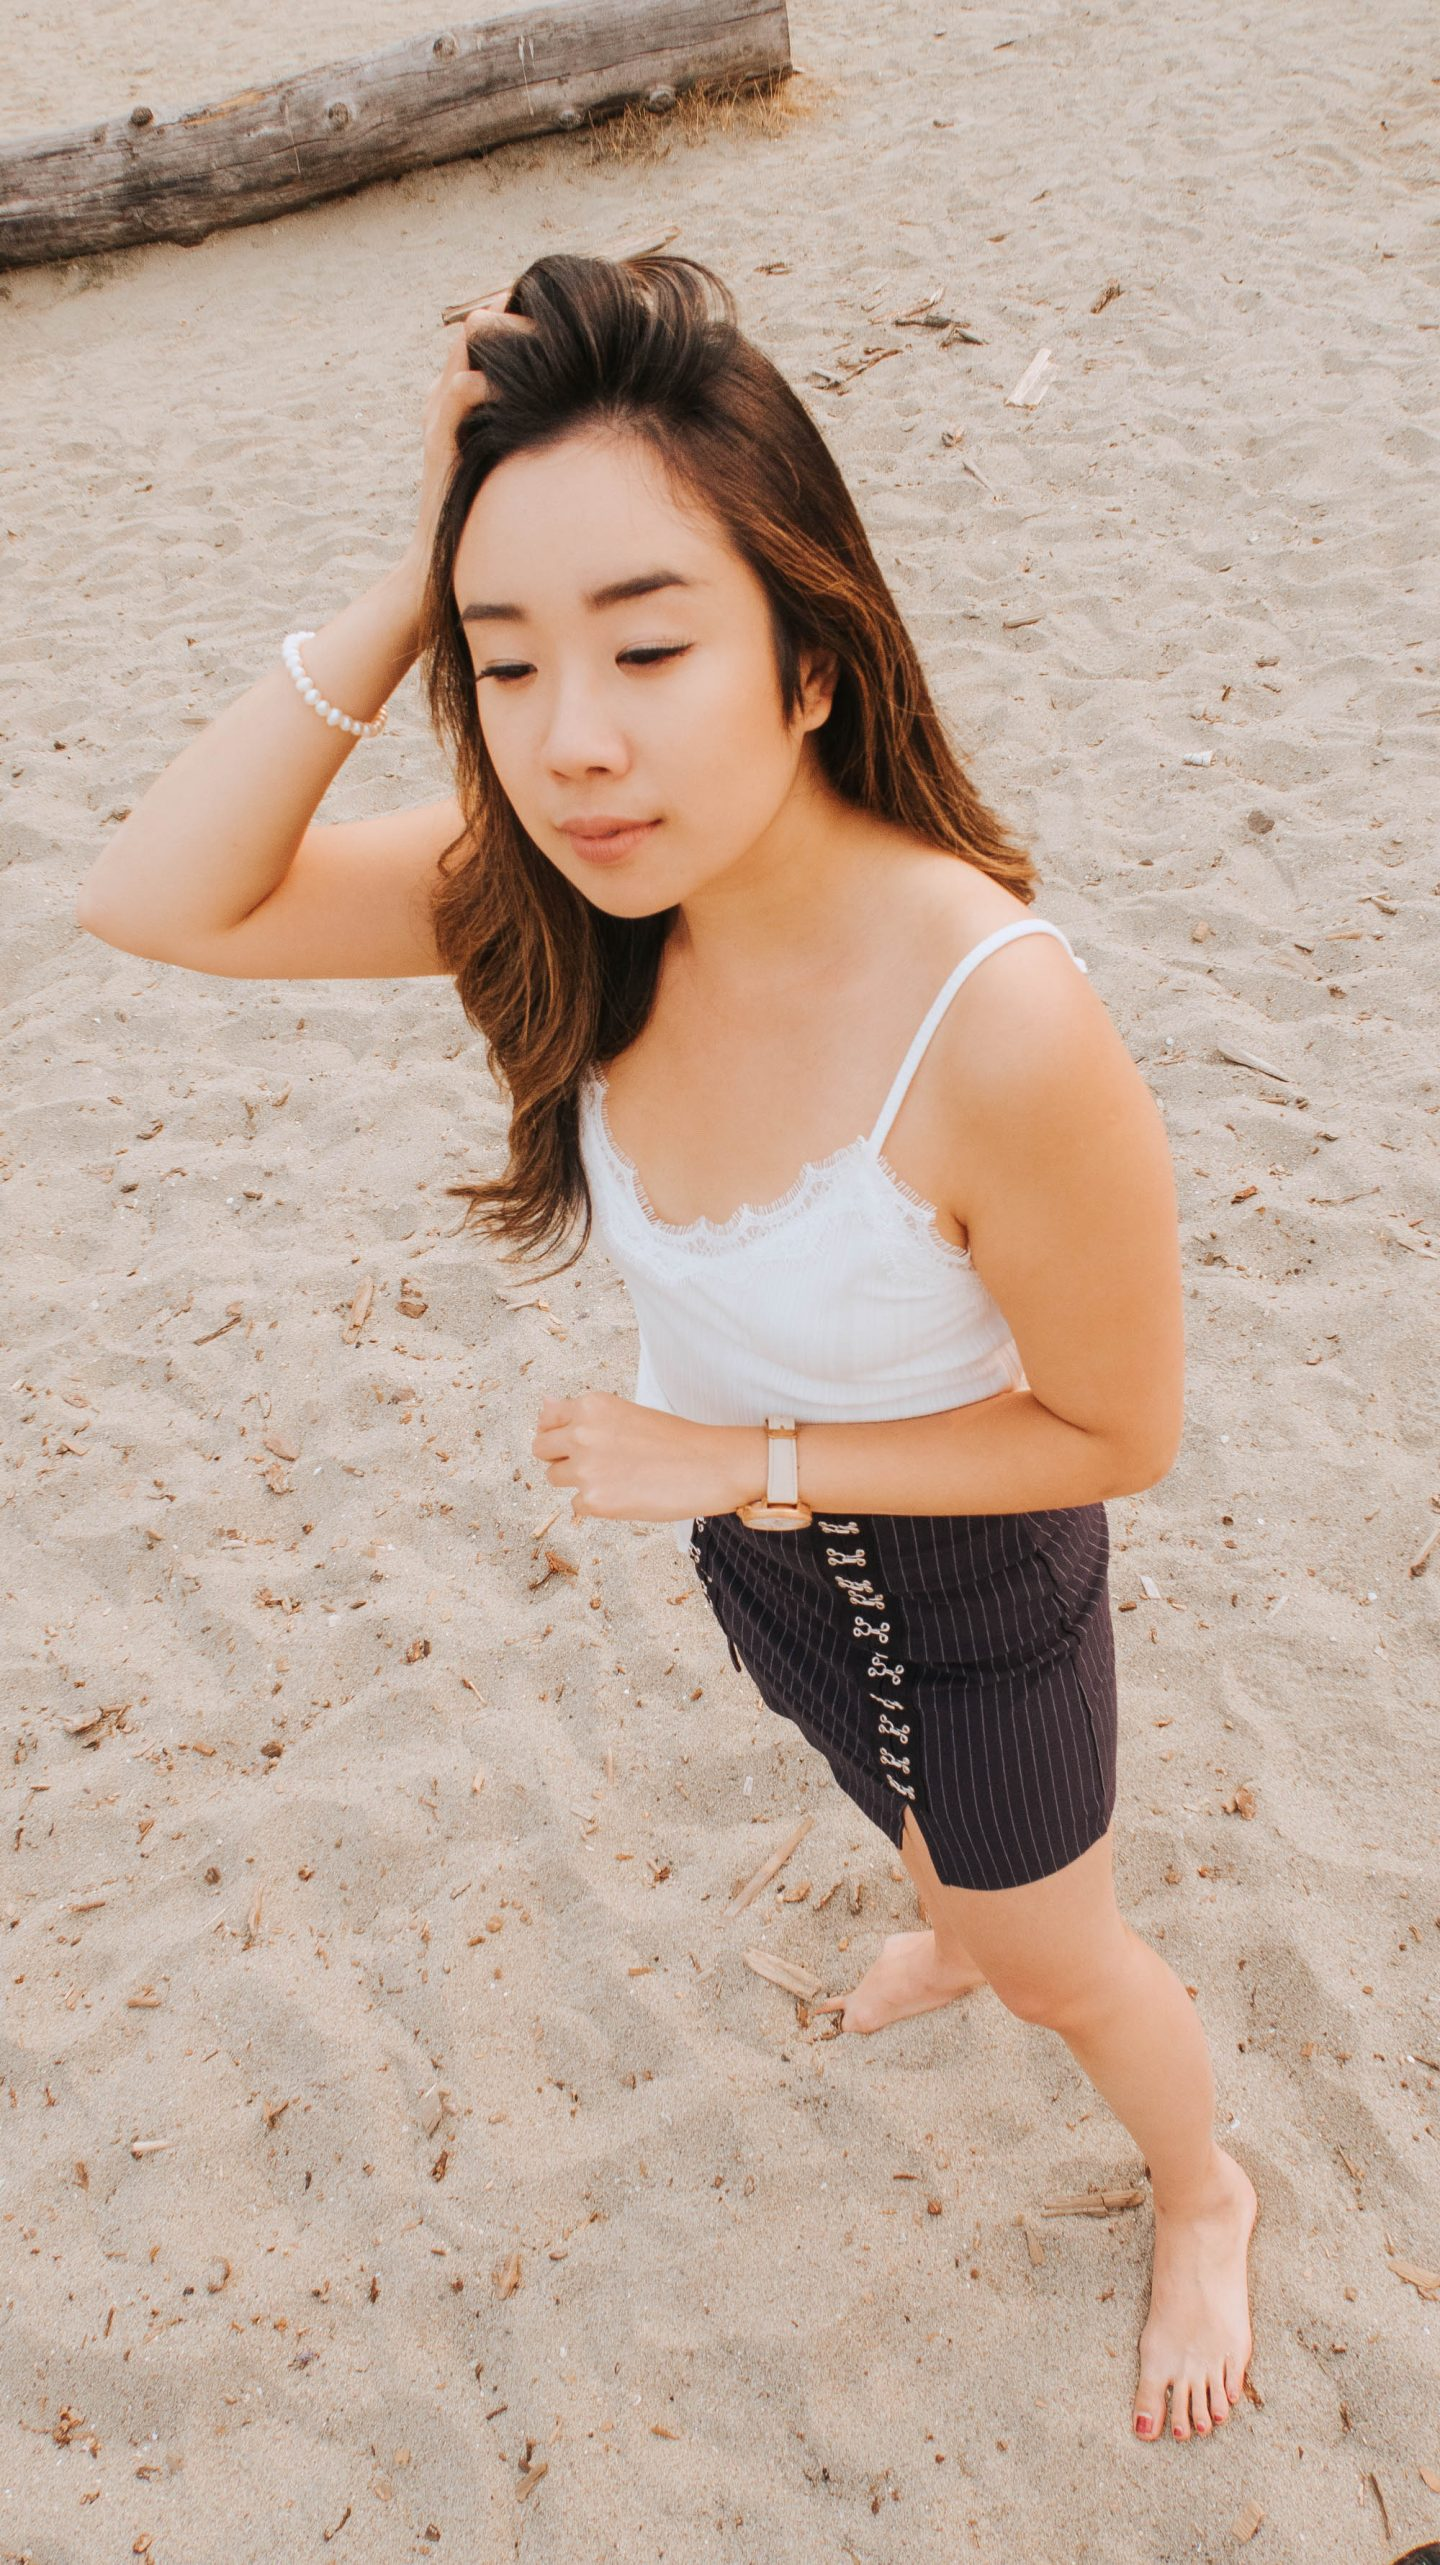 Posing on a beach in Vancouver BC that reminds me of Hawaii